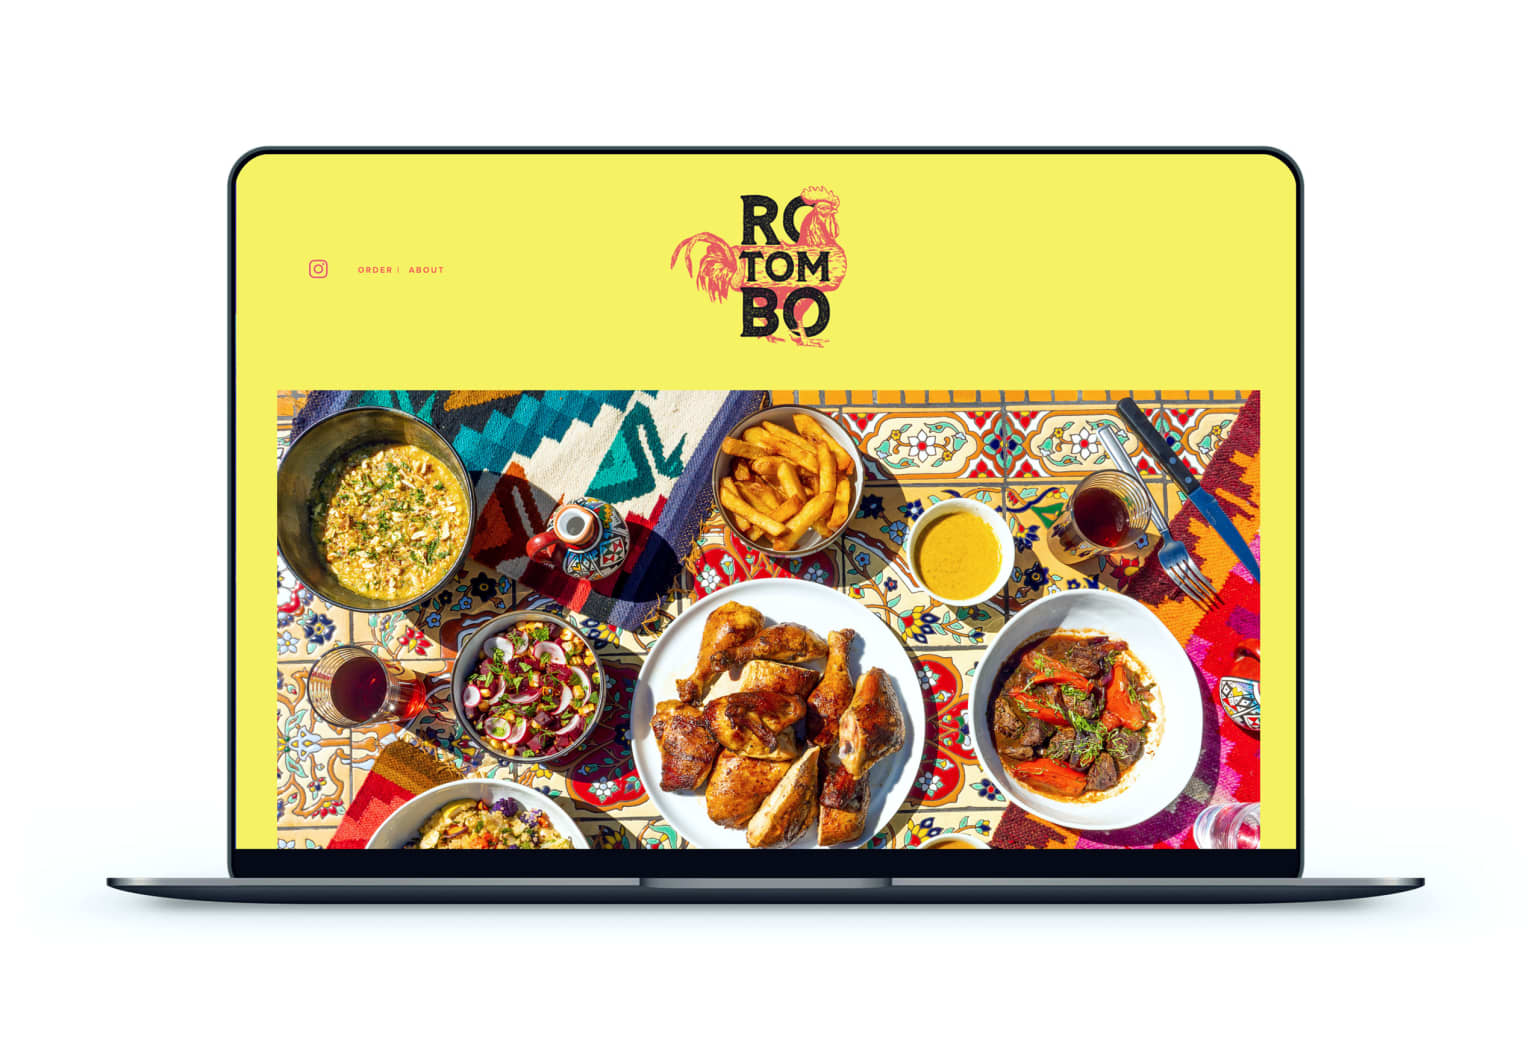 Rotombo - The Best Mother Lovin' Chicken in Los Angeles